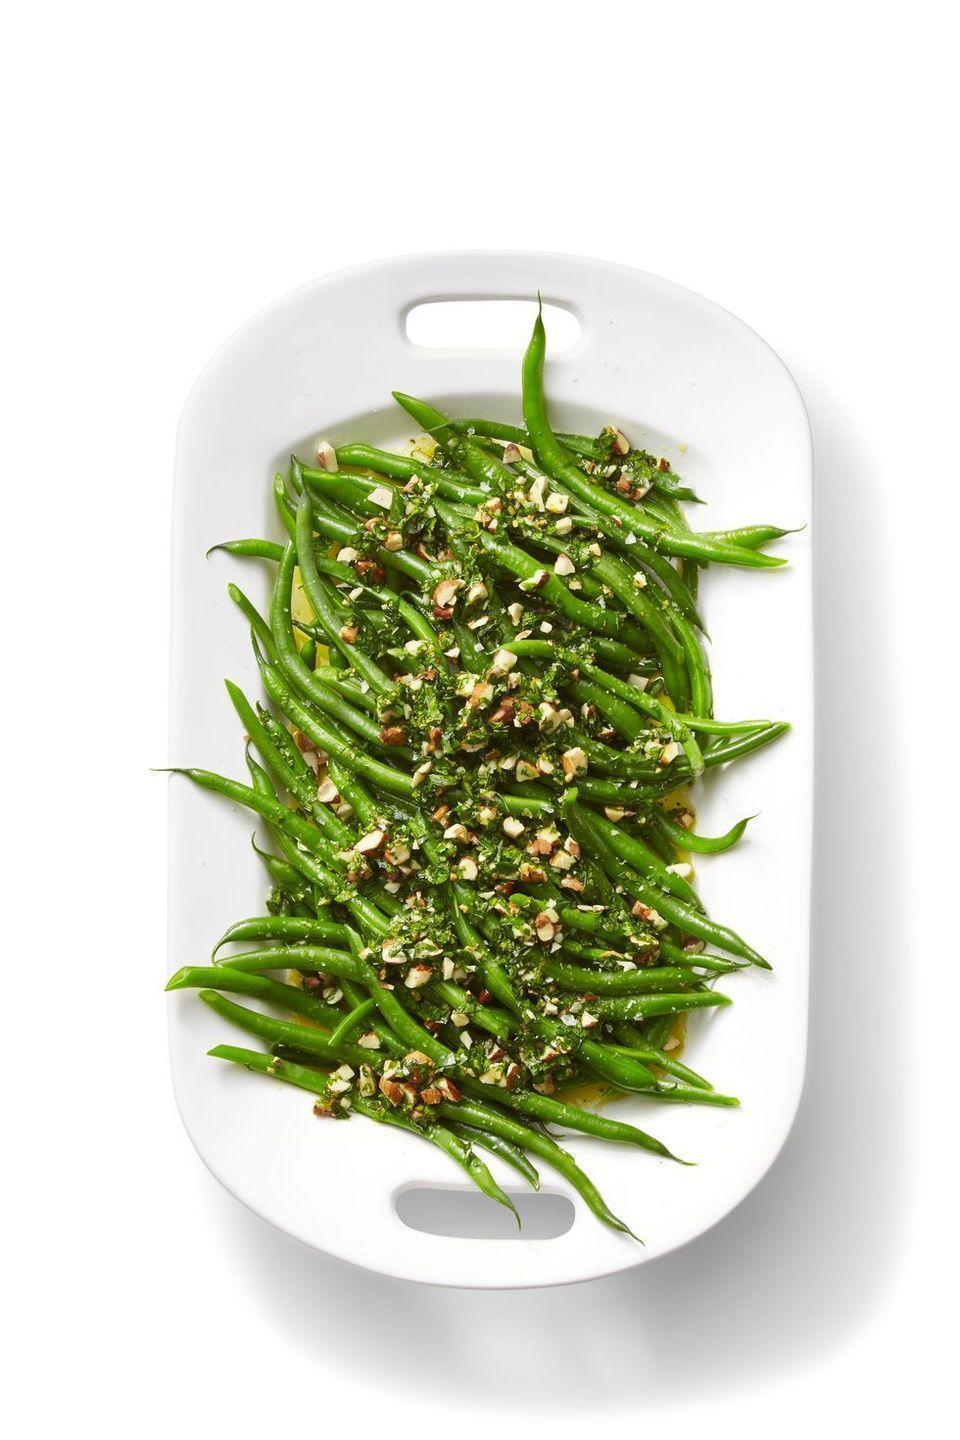 """<p>Flavor plain greens with rosemary, garlic, and orange zest for a fresh and easy side. </p><p><em><a href=""""https://www.womansday.com/food-recipes/food-drinks/a24115941/green-beans-with-orange-and-almond-gremolata-recipe/"""" rel=""""nofollow noopener"""" target=""""_blank"""" data-ylk=""""slk:Get the recipe from Woman's Day »"""" class=""""link rapid-noclick-resp"""">Get the recipe from Woman's Day »</a></em></p><p><strong>RELATED: </strong><a href=""""https://www.goodhousekeeping.com/holidays/thanksgiving-ideas/g803/green-beans/"""" rel=""""nofollow noopener"""" target=""""_blank"""" data-ylk=""""slk:31 Green Bean Recipes For Thanksgiving That Will Make These Veggies the Life of the Party"""" class=""""link rapid-noclick-resp"""">31 Green Bean Recipes For Thanksgiving That Will Make These Veggies the Life of the Party</a></p>"""